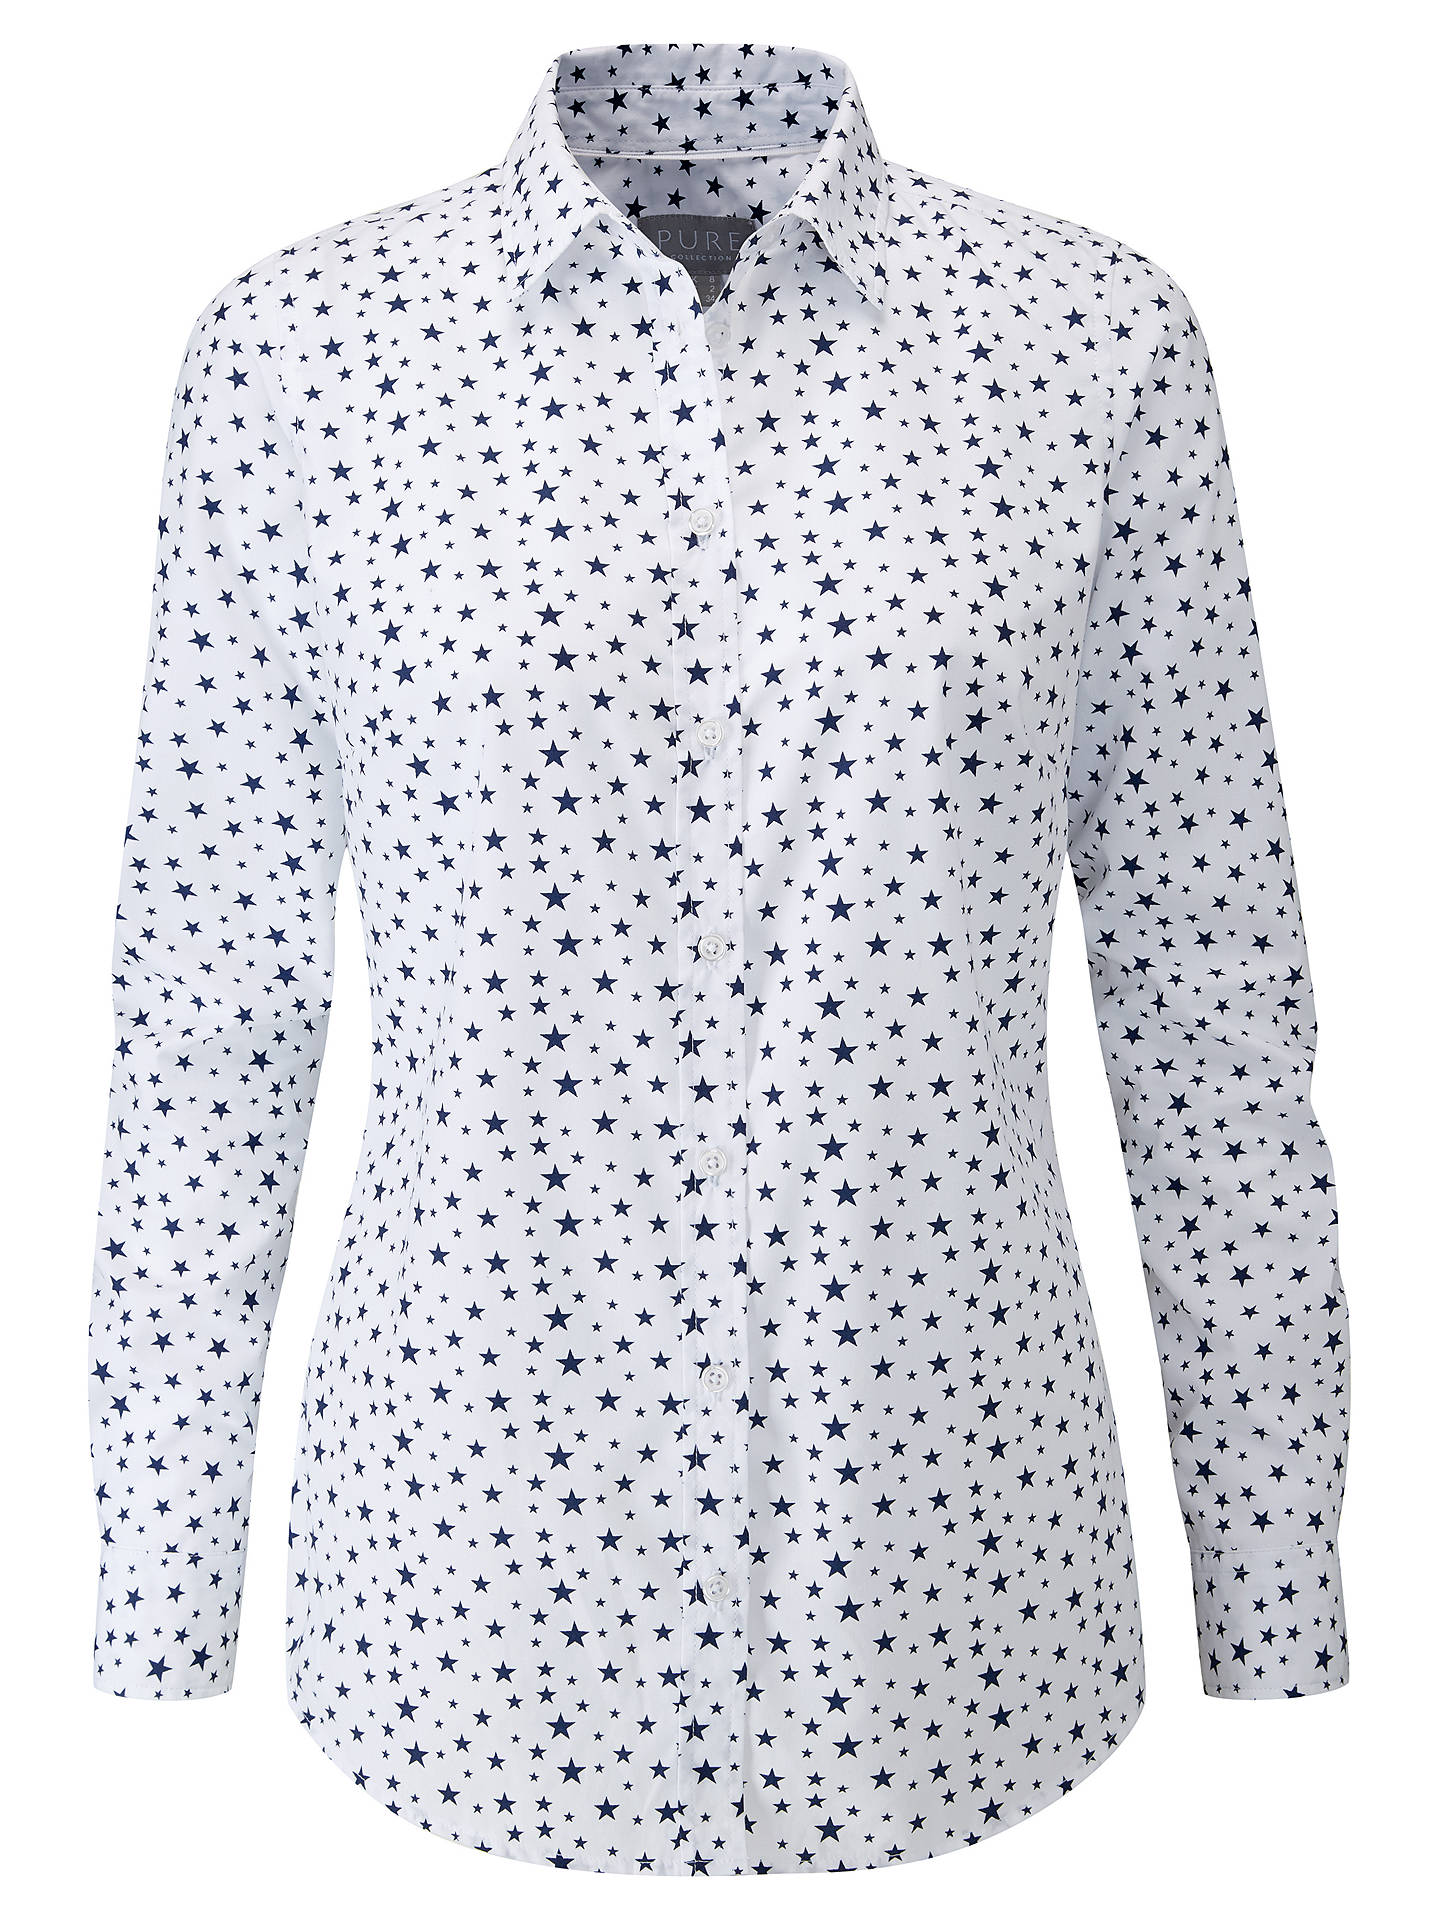 Buy Pure Collection Star Print Cotton Shirt, White/Blue, 8 Online at johnlewis.com